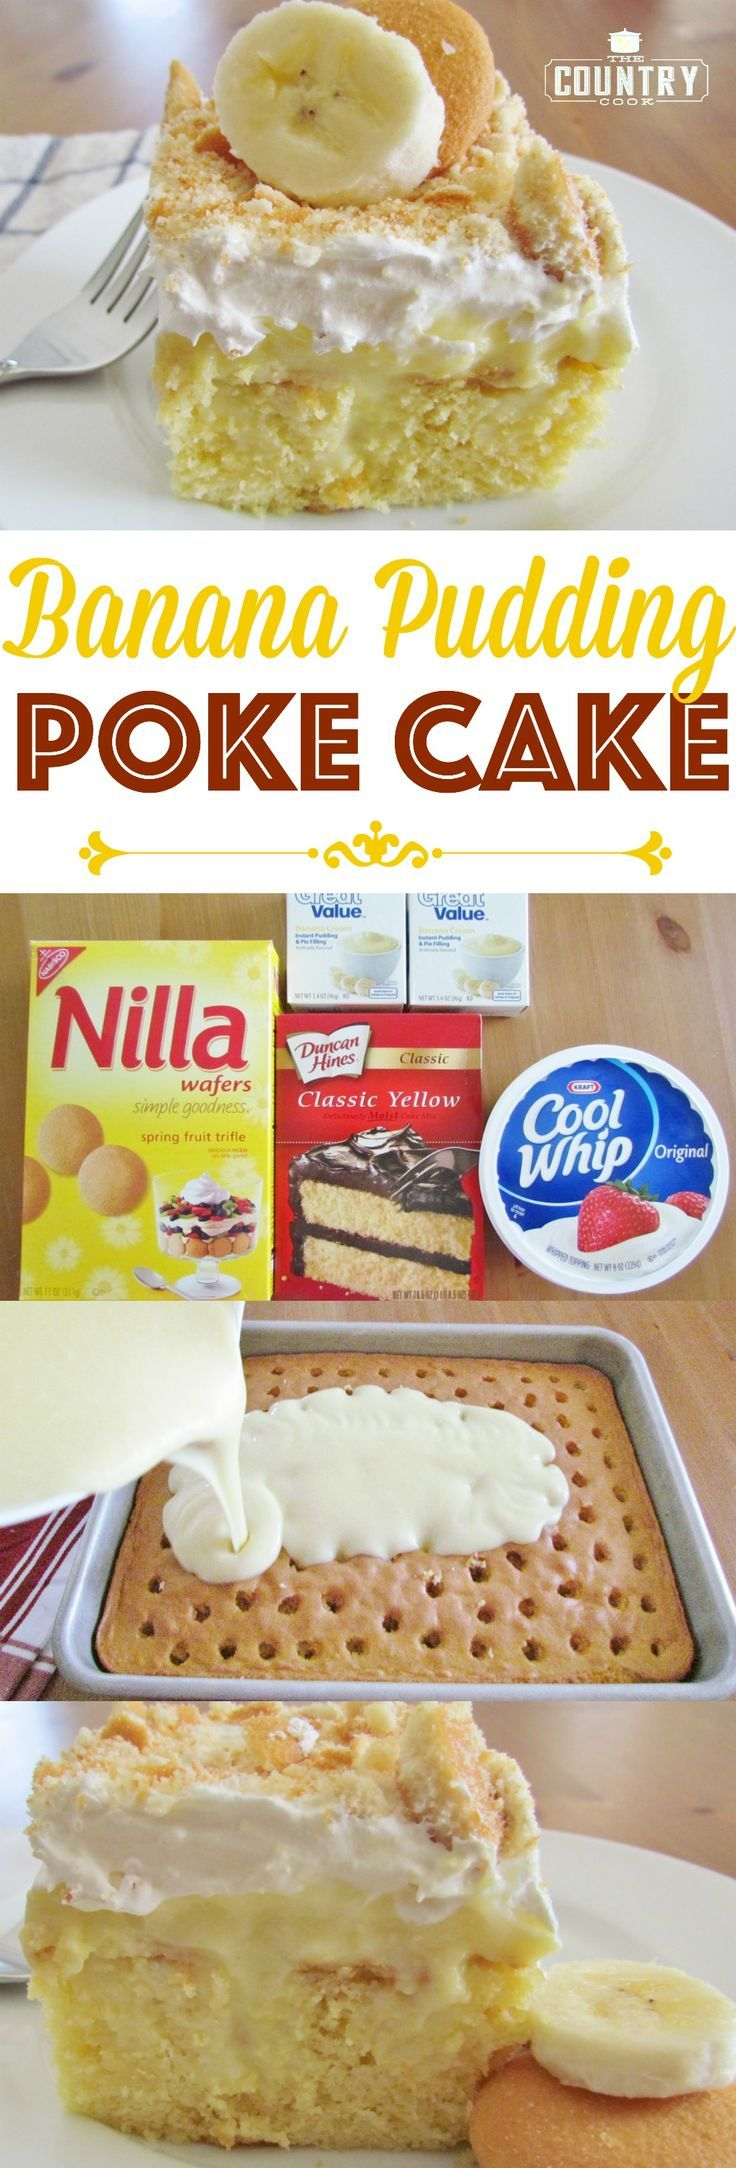 Banana Pudding Poke Cake recipe from The Country Cook. This is *THE ORIGINAL* recipe that started the pudding poke cake craze! It's our favorite!